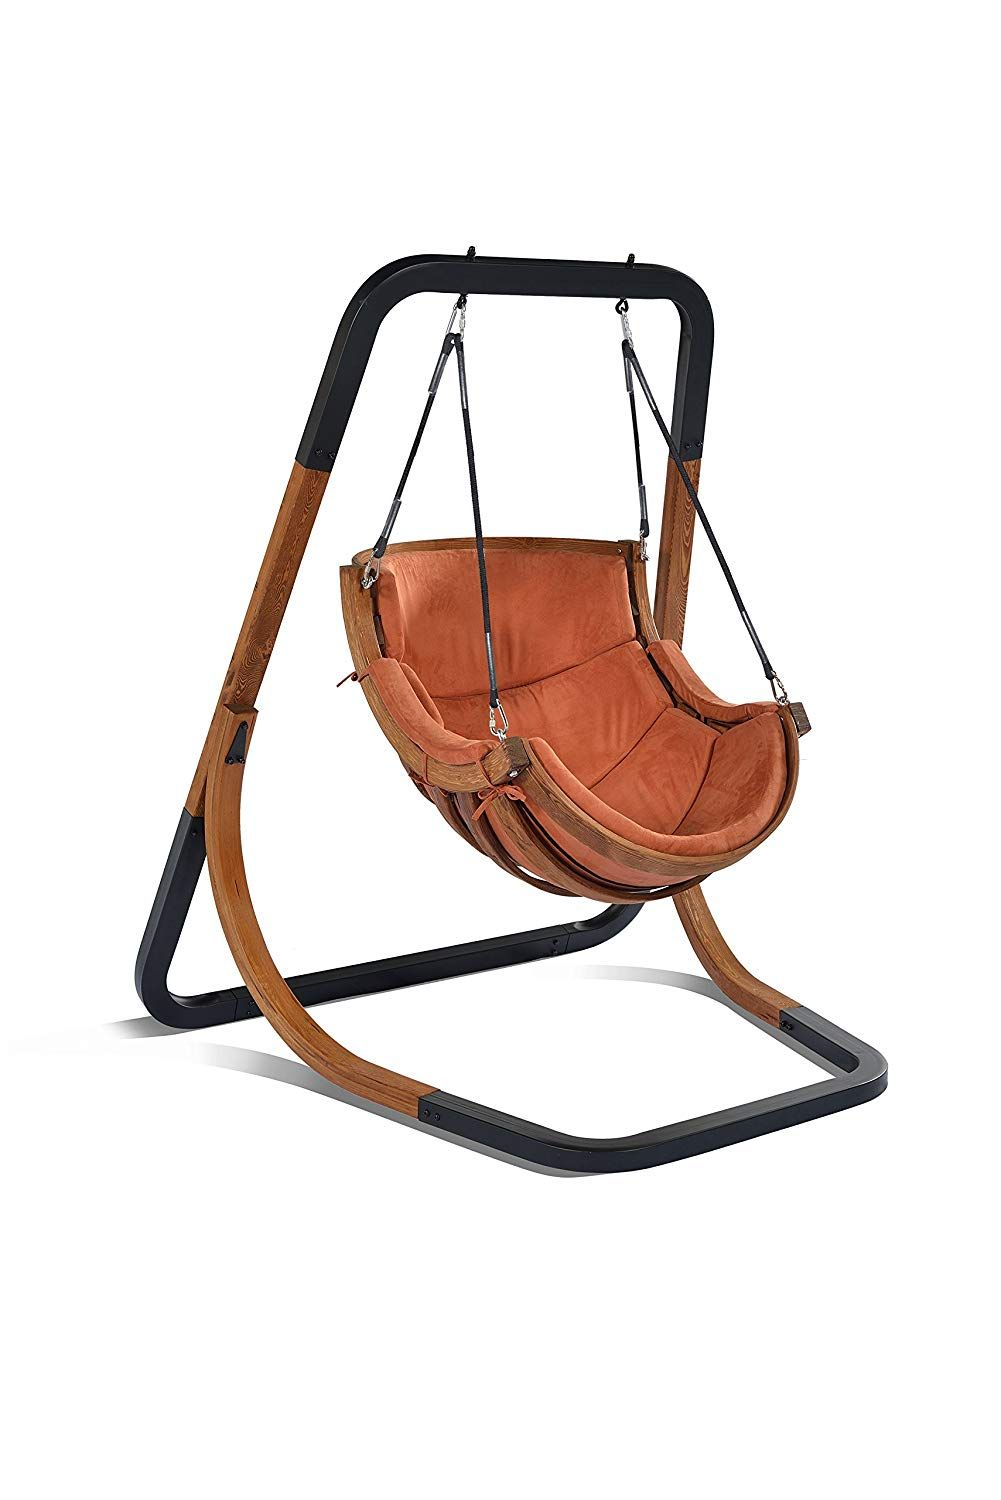 Trapezoid swing chairthe brand new style swing chair in wood and